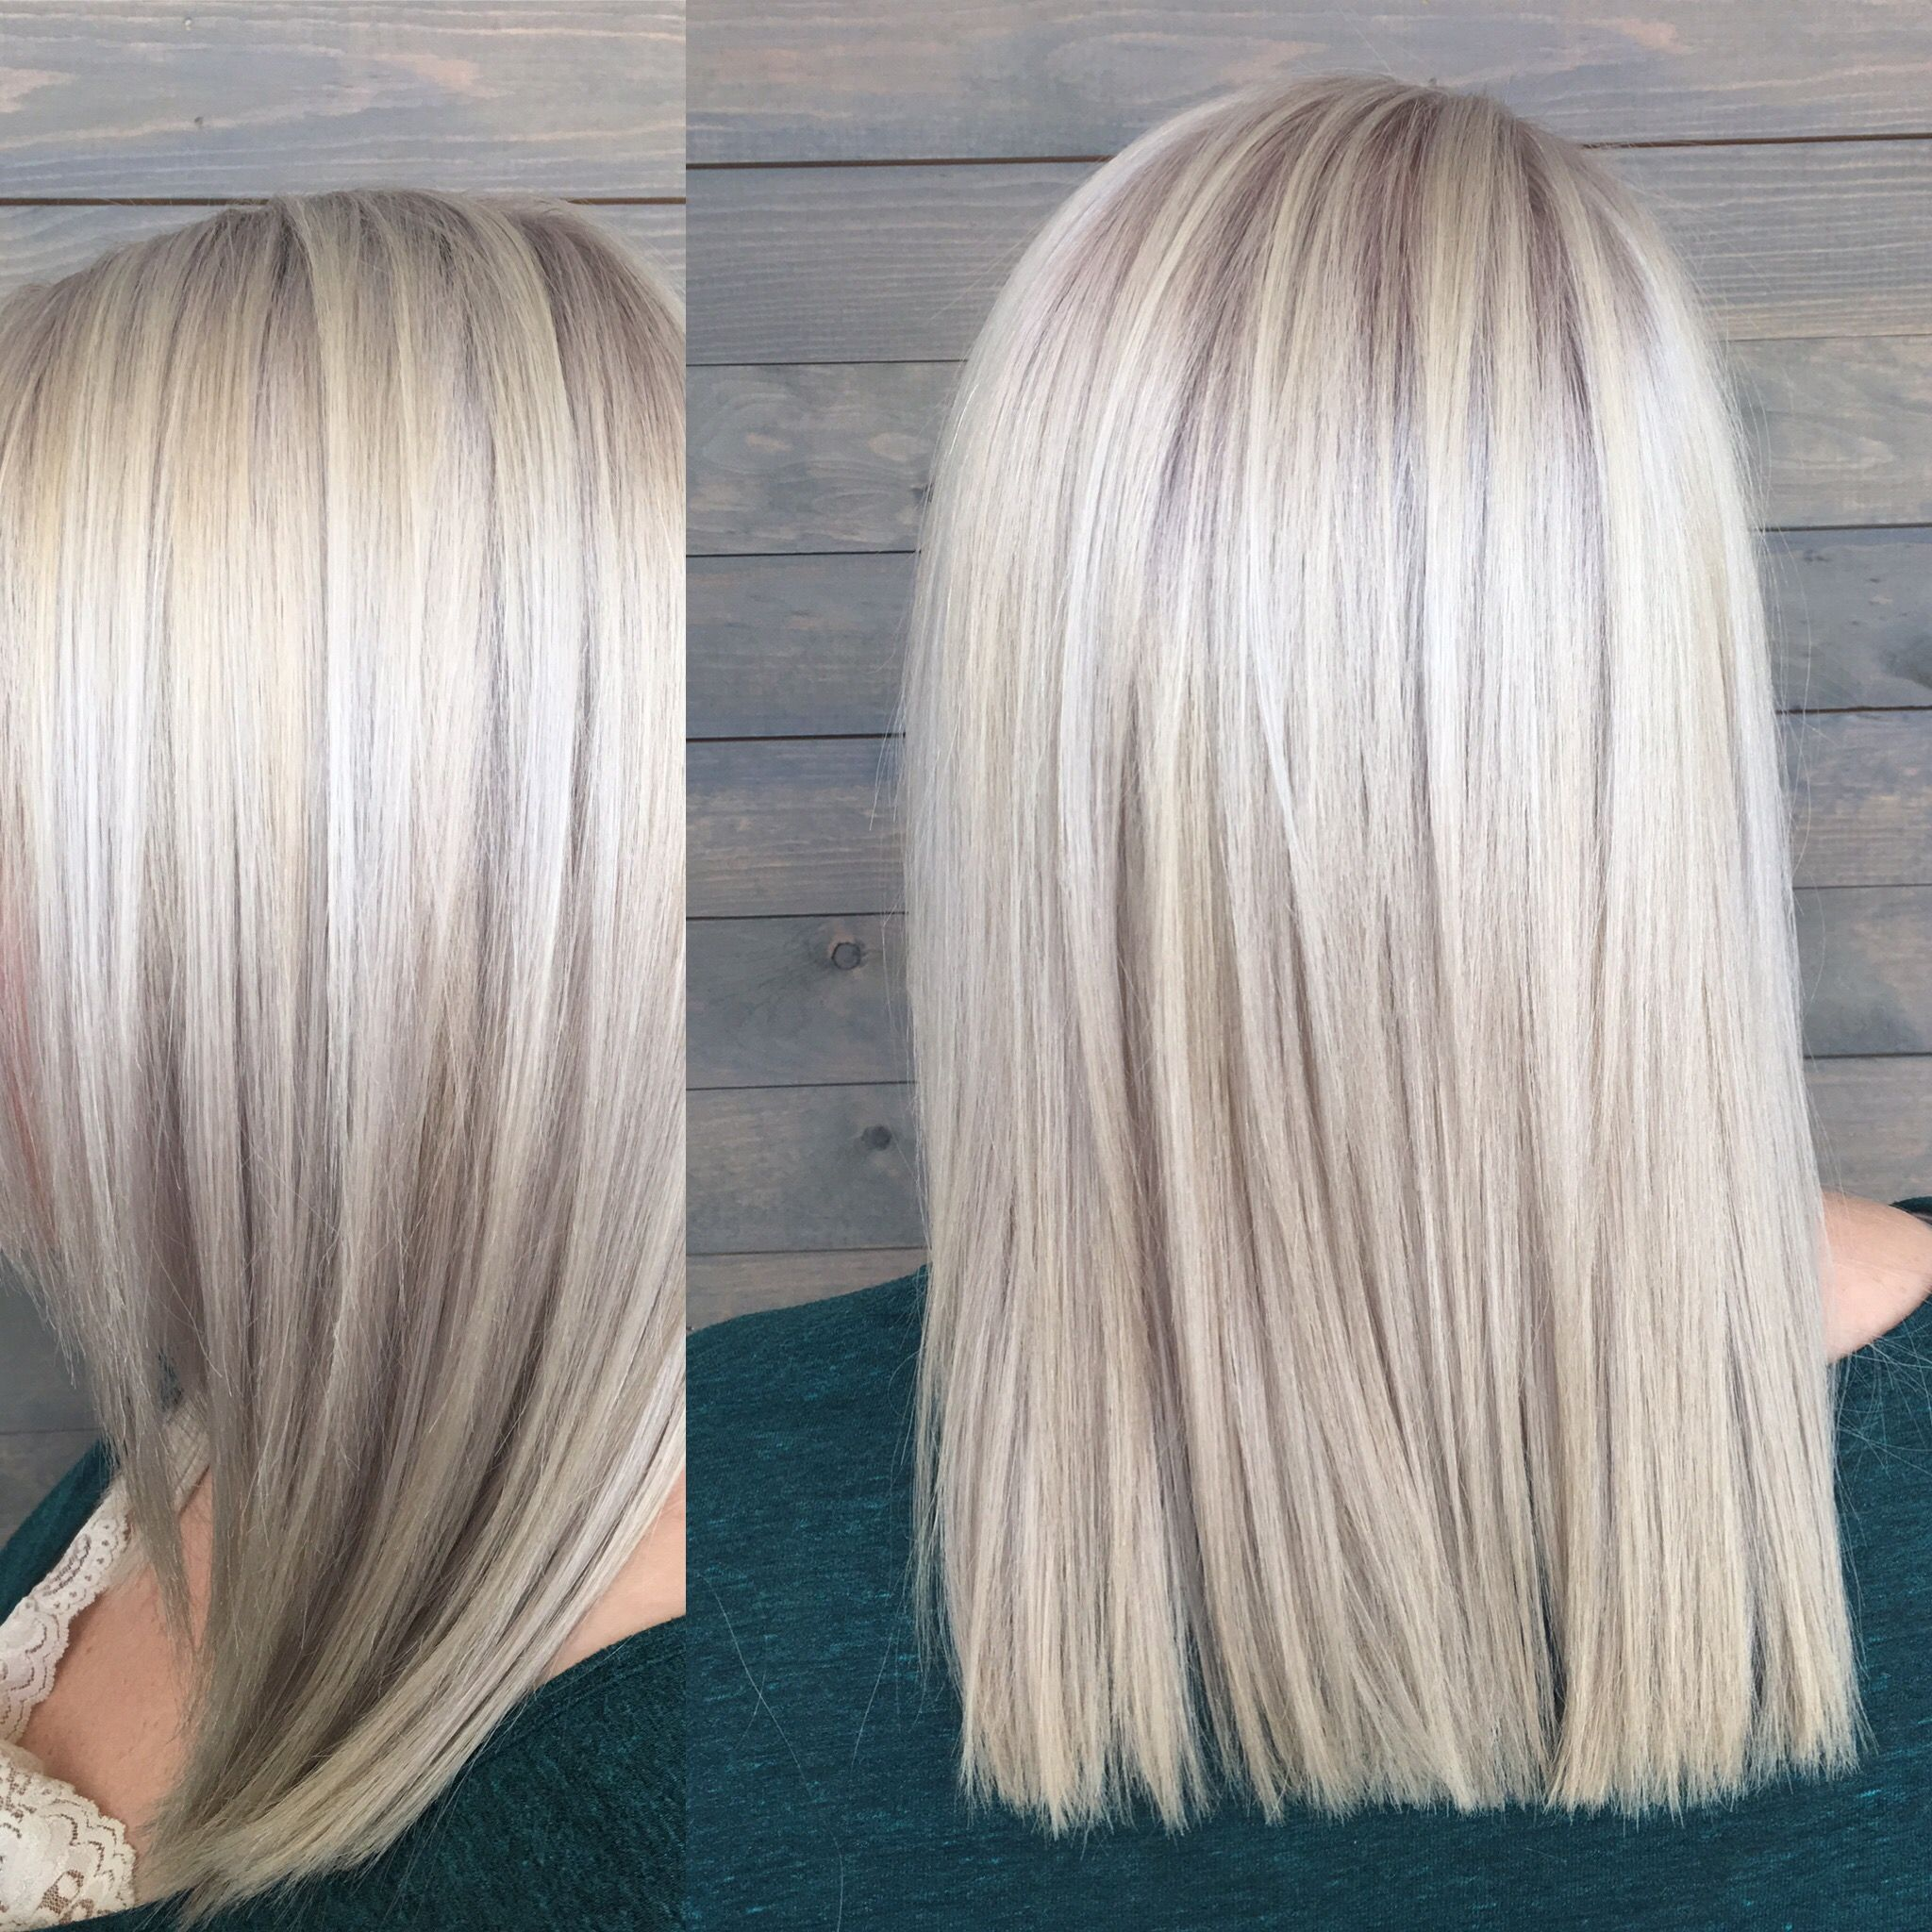 #hairstyle ideas mid length #easy hairstyle for ideas #hairstyle ideas 4c #mens hairstyle ideas 2018 #hairstyle ideas over 50 #hairstyle ideas for 4c hair #hairstyle ideas low ponytail #hairstyle ideas at home